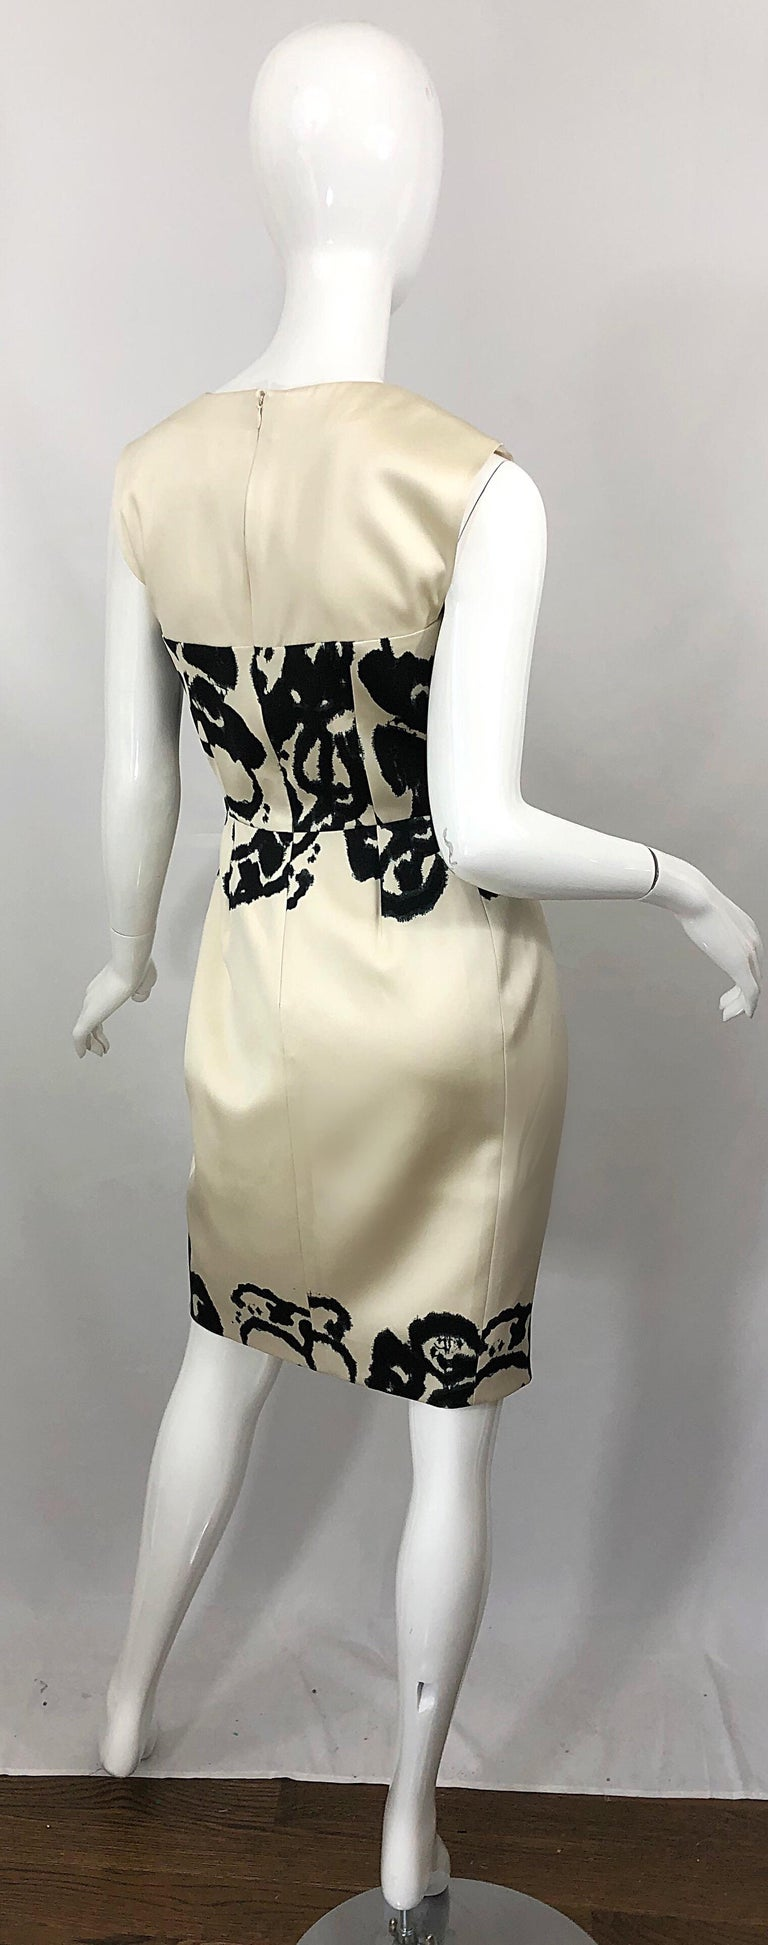 New Yves Saint Laurent Size 42 / 8-10 Ivory and Black Abstract Print Silk Dress For Sale 1